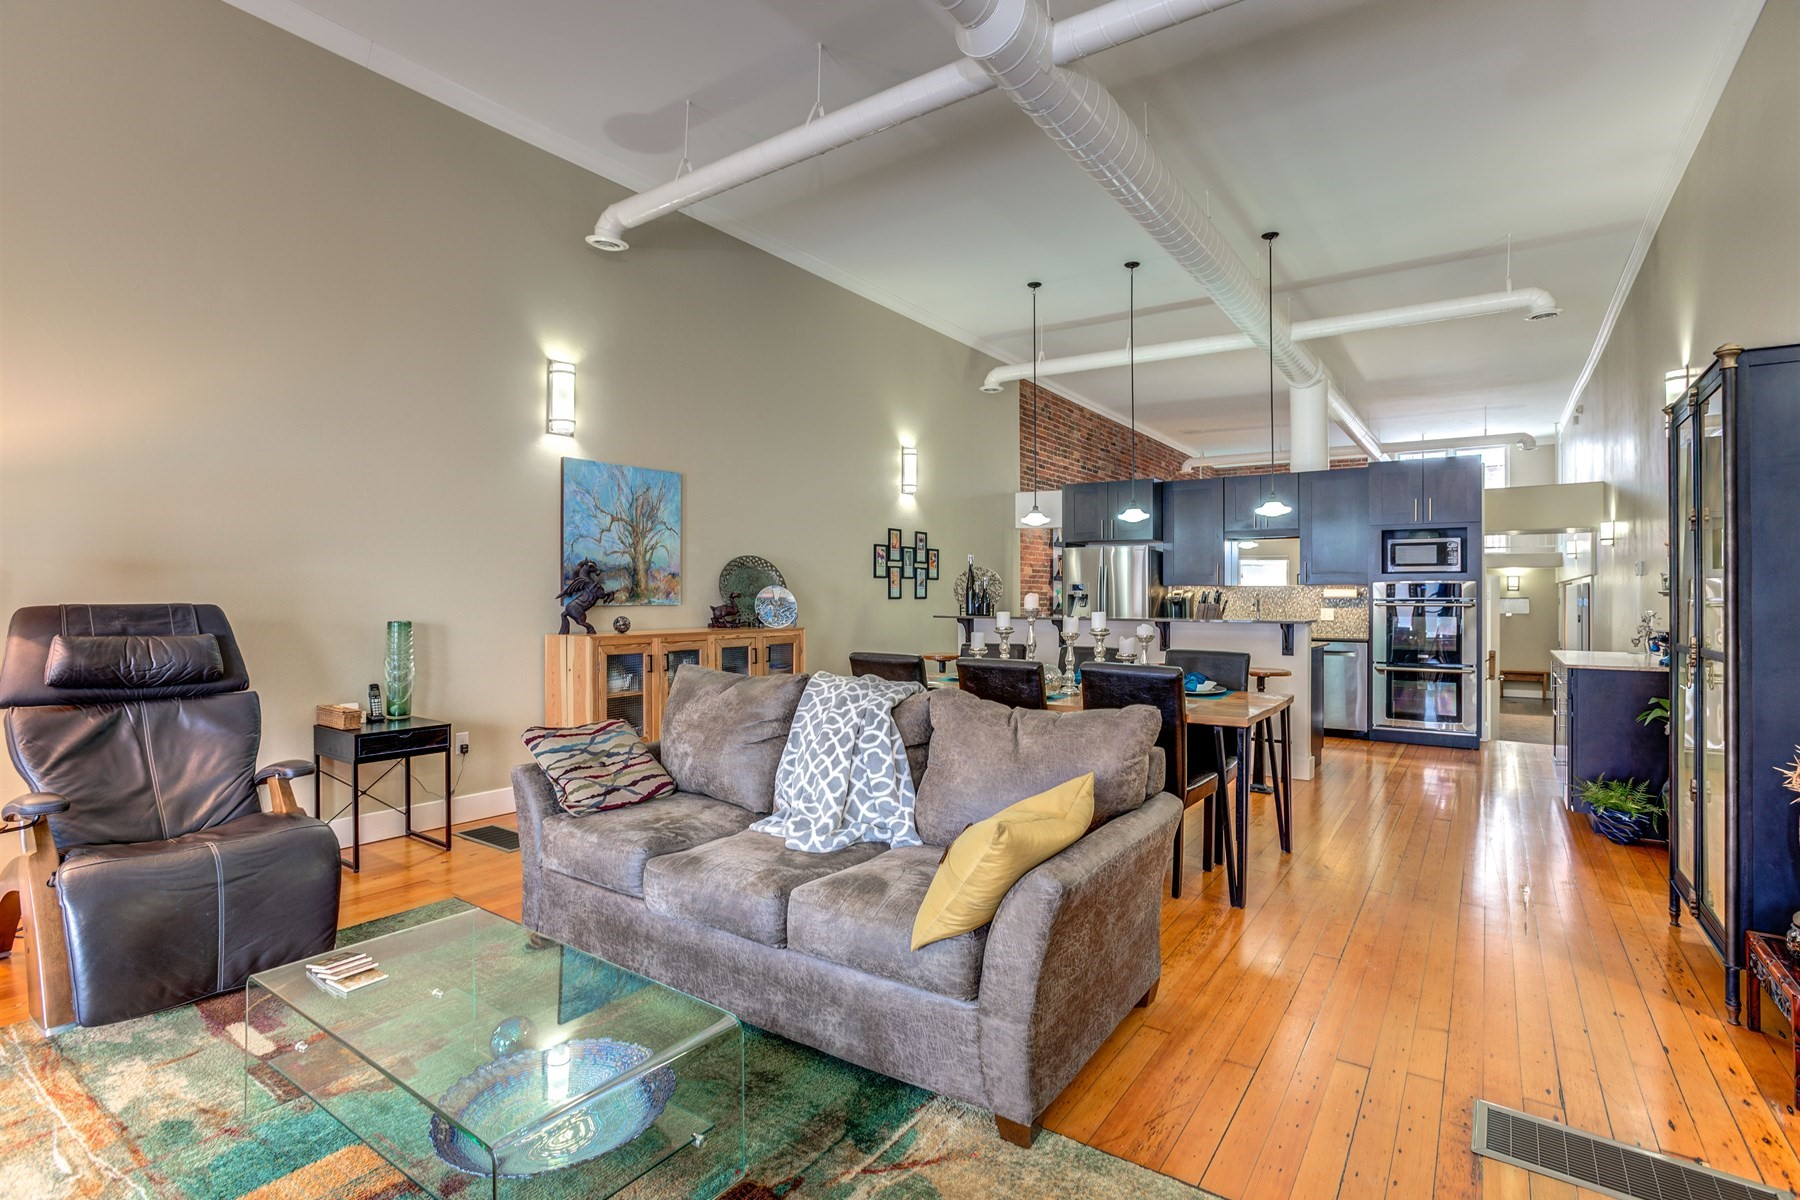 Single Family Home for Sale at Urban Style Interior Historical Building 53 Wisconsin Priest River, Idaho 83856 United States